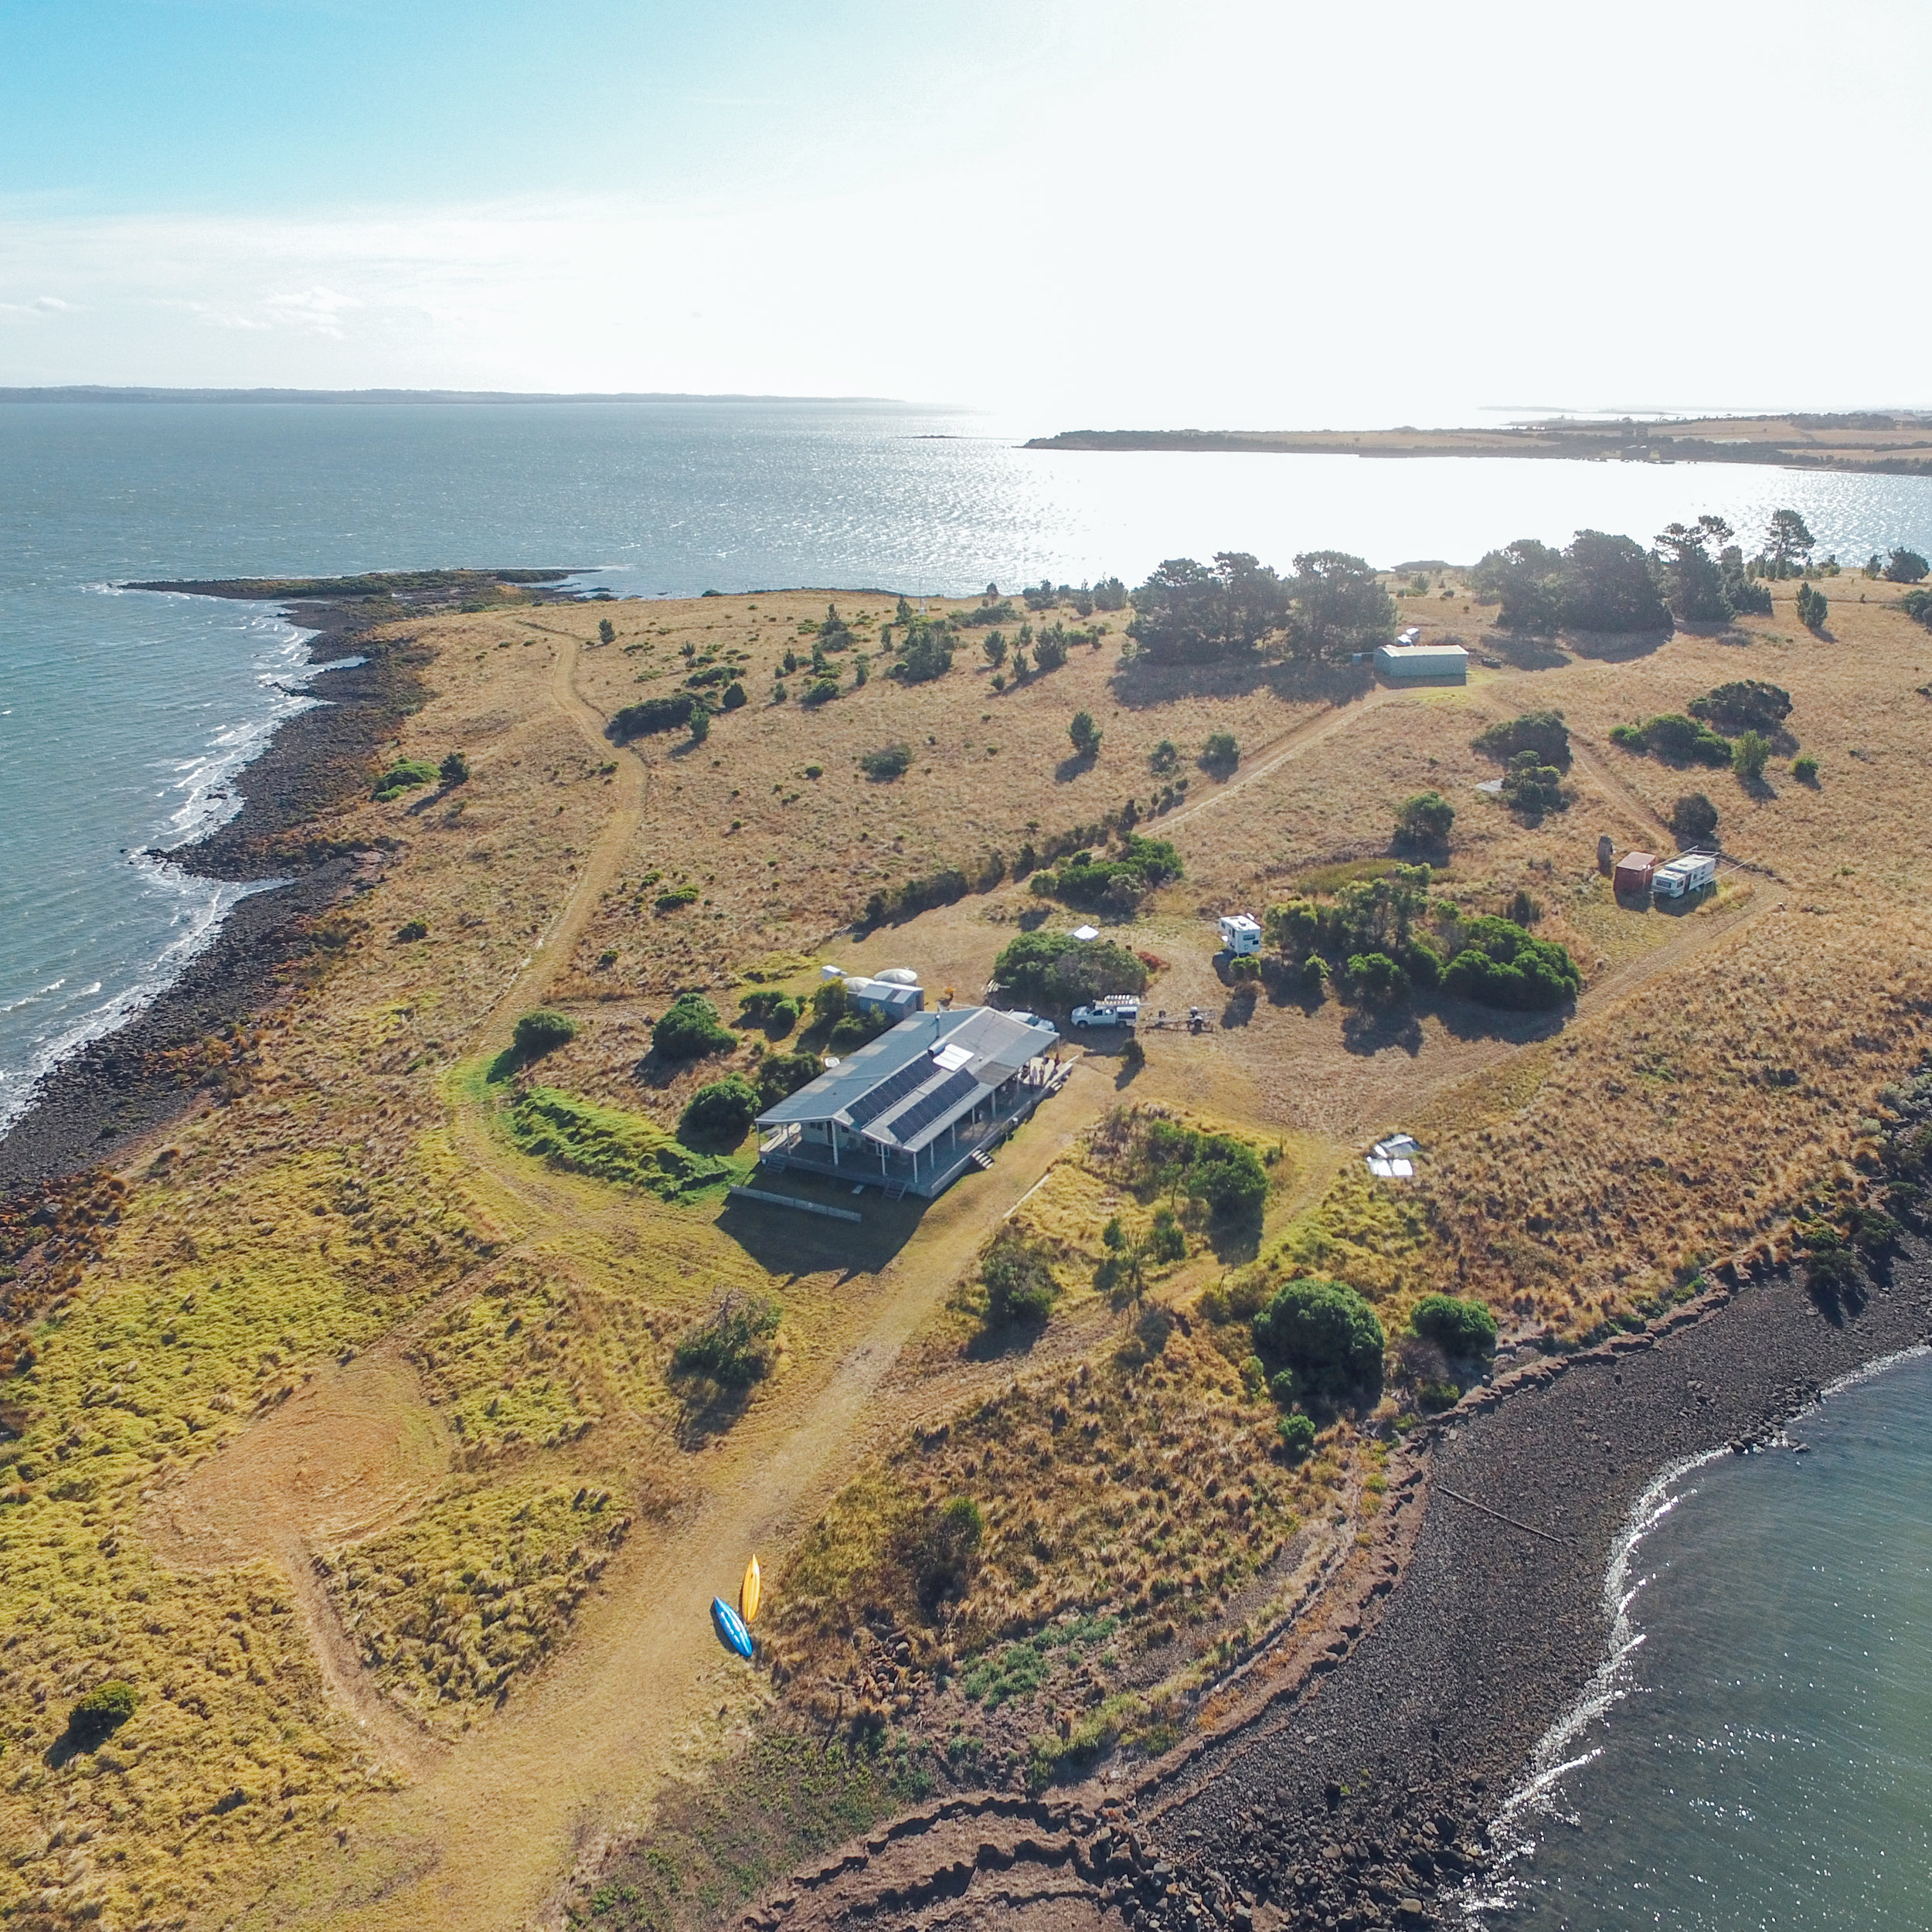 Solar Power Energy Off Grid Battery Storage Elizabeth Island Bass Coast Phillip Island square crop.jpg